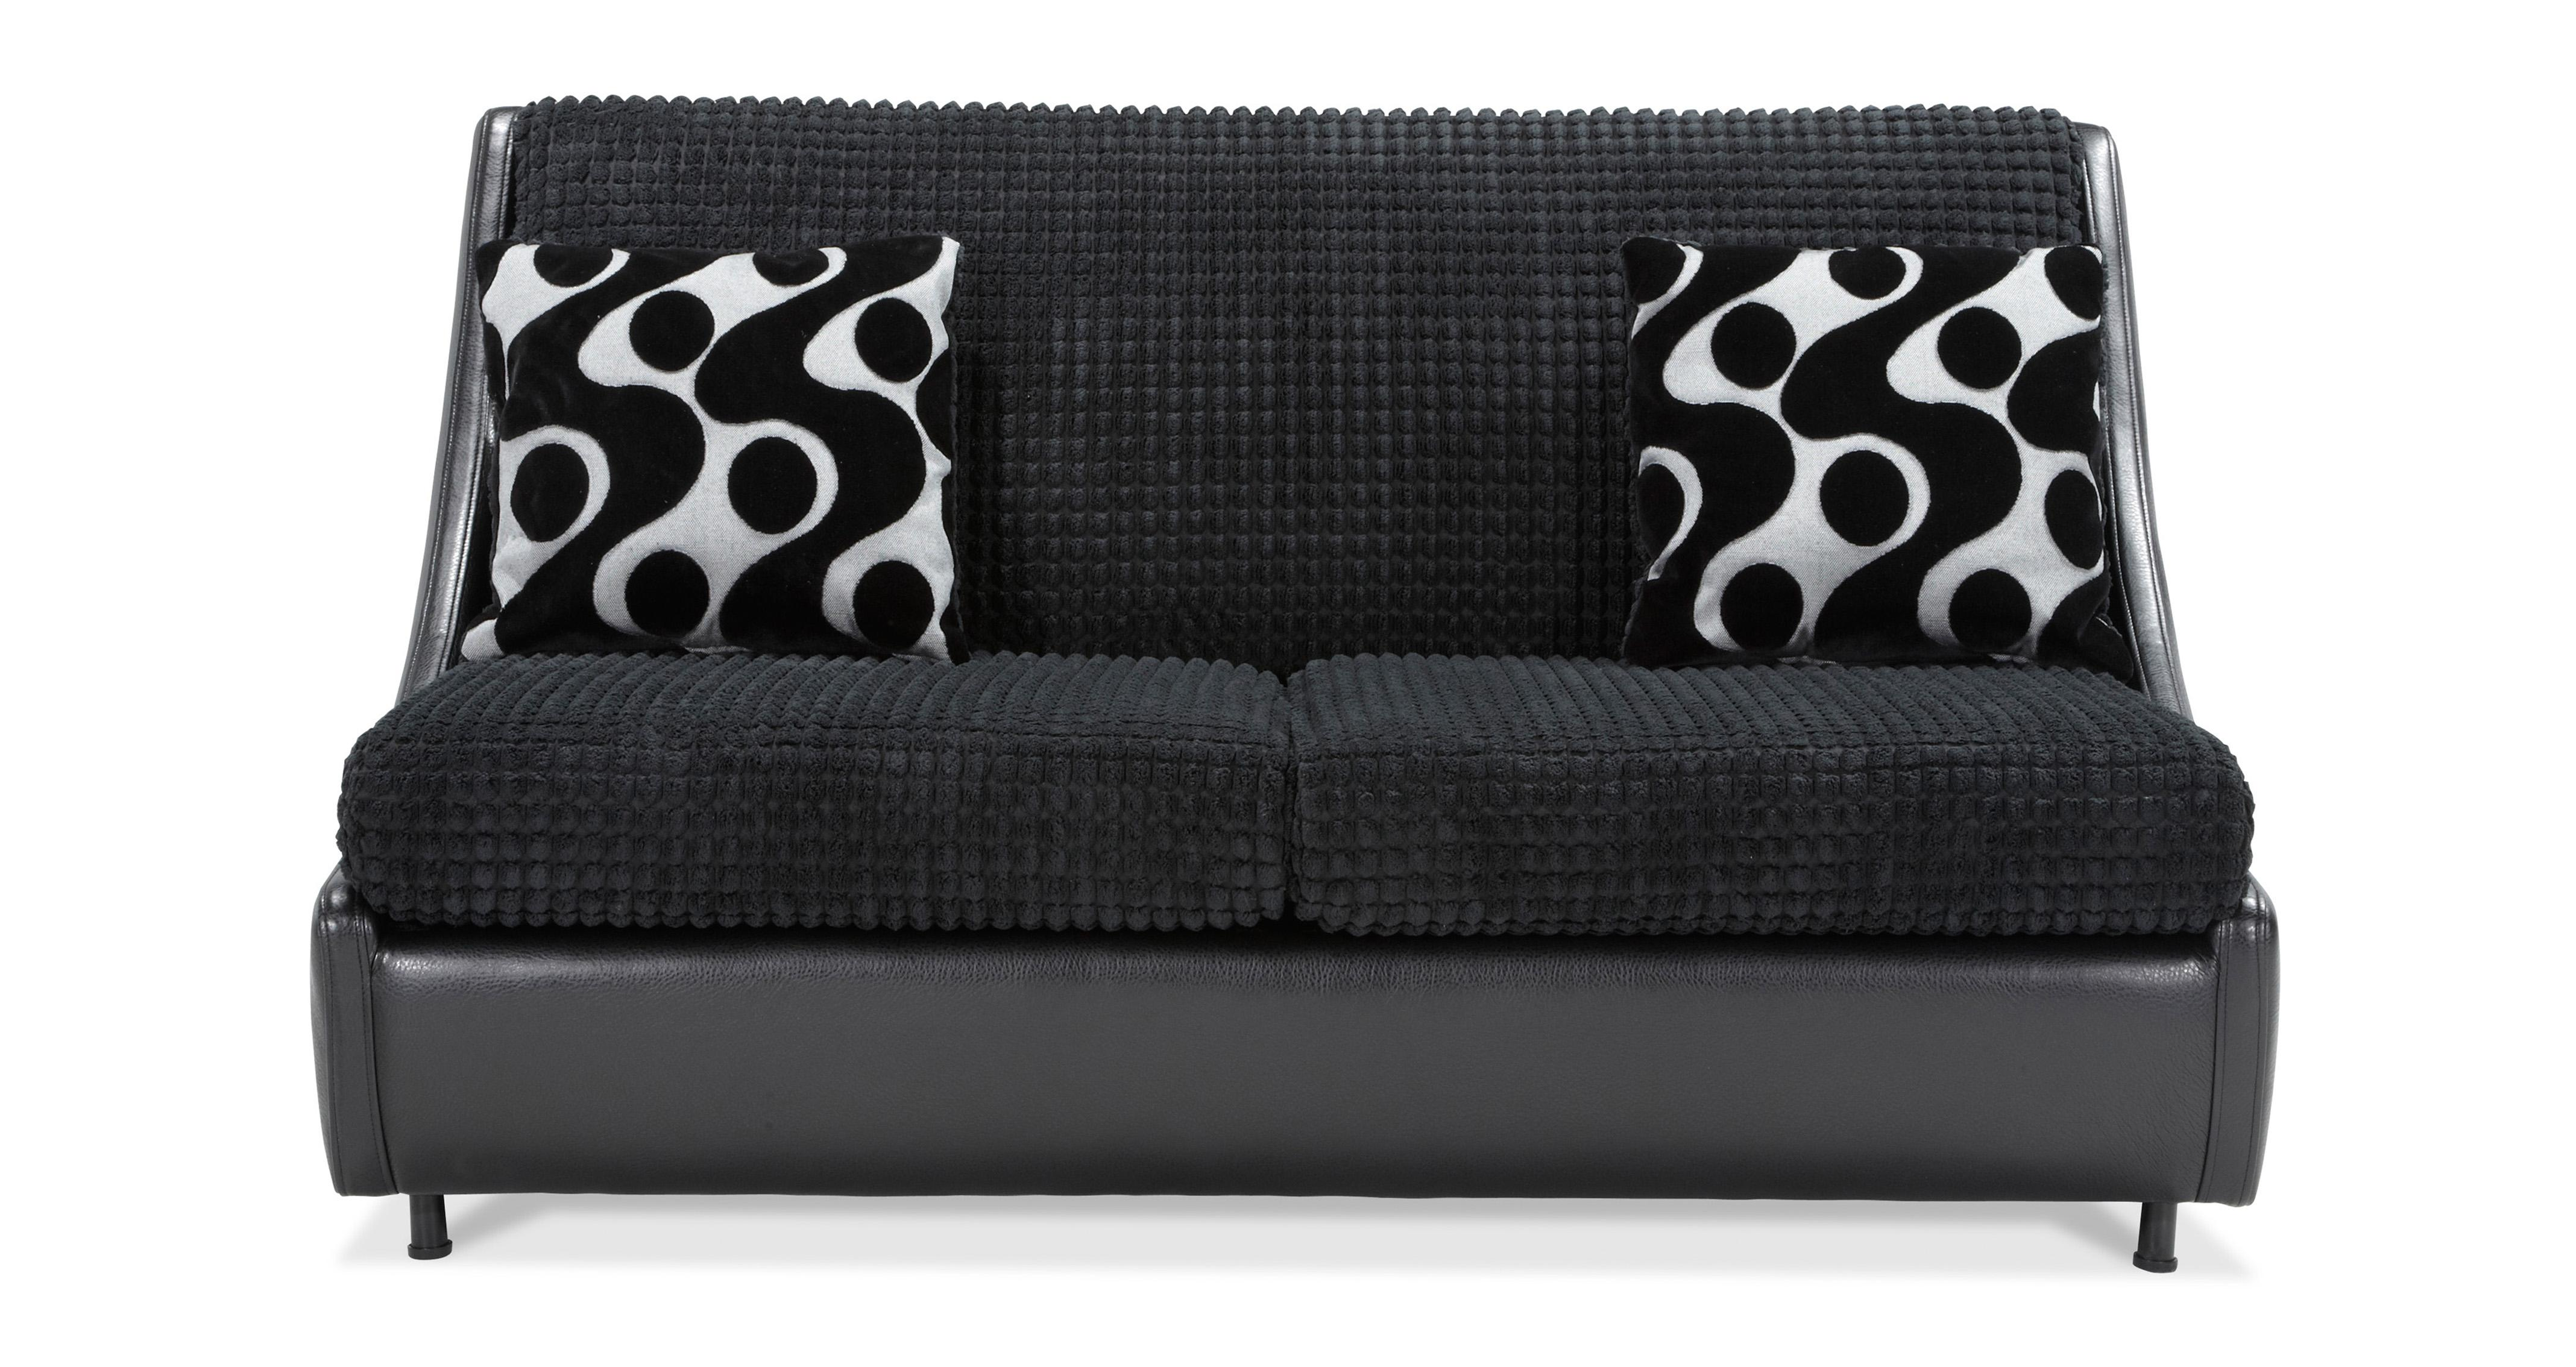 Pax 2 Seater pact Formal Back Sofa Bed